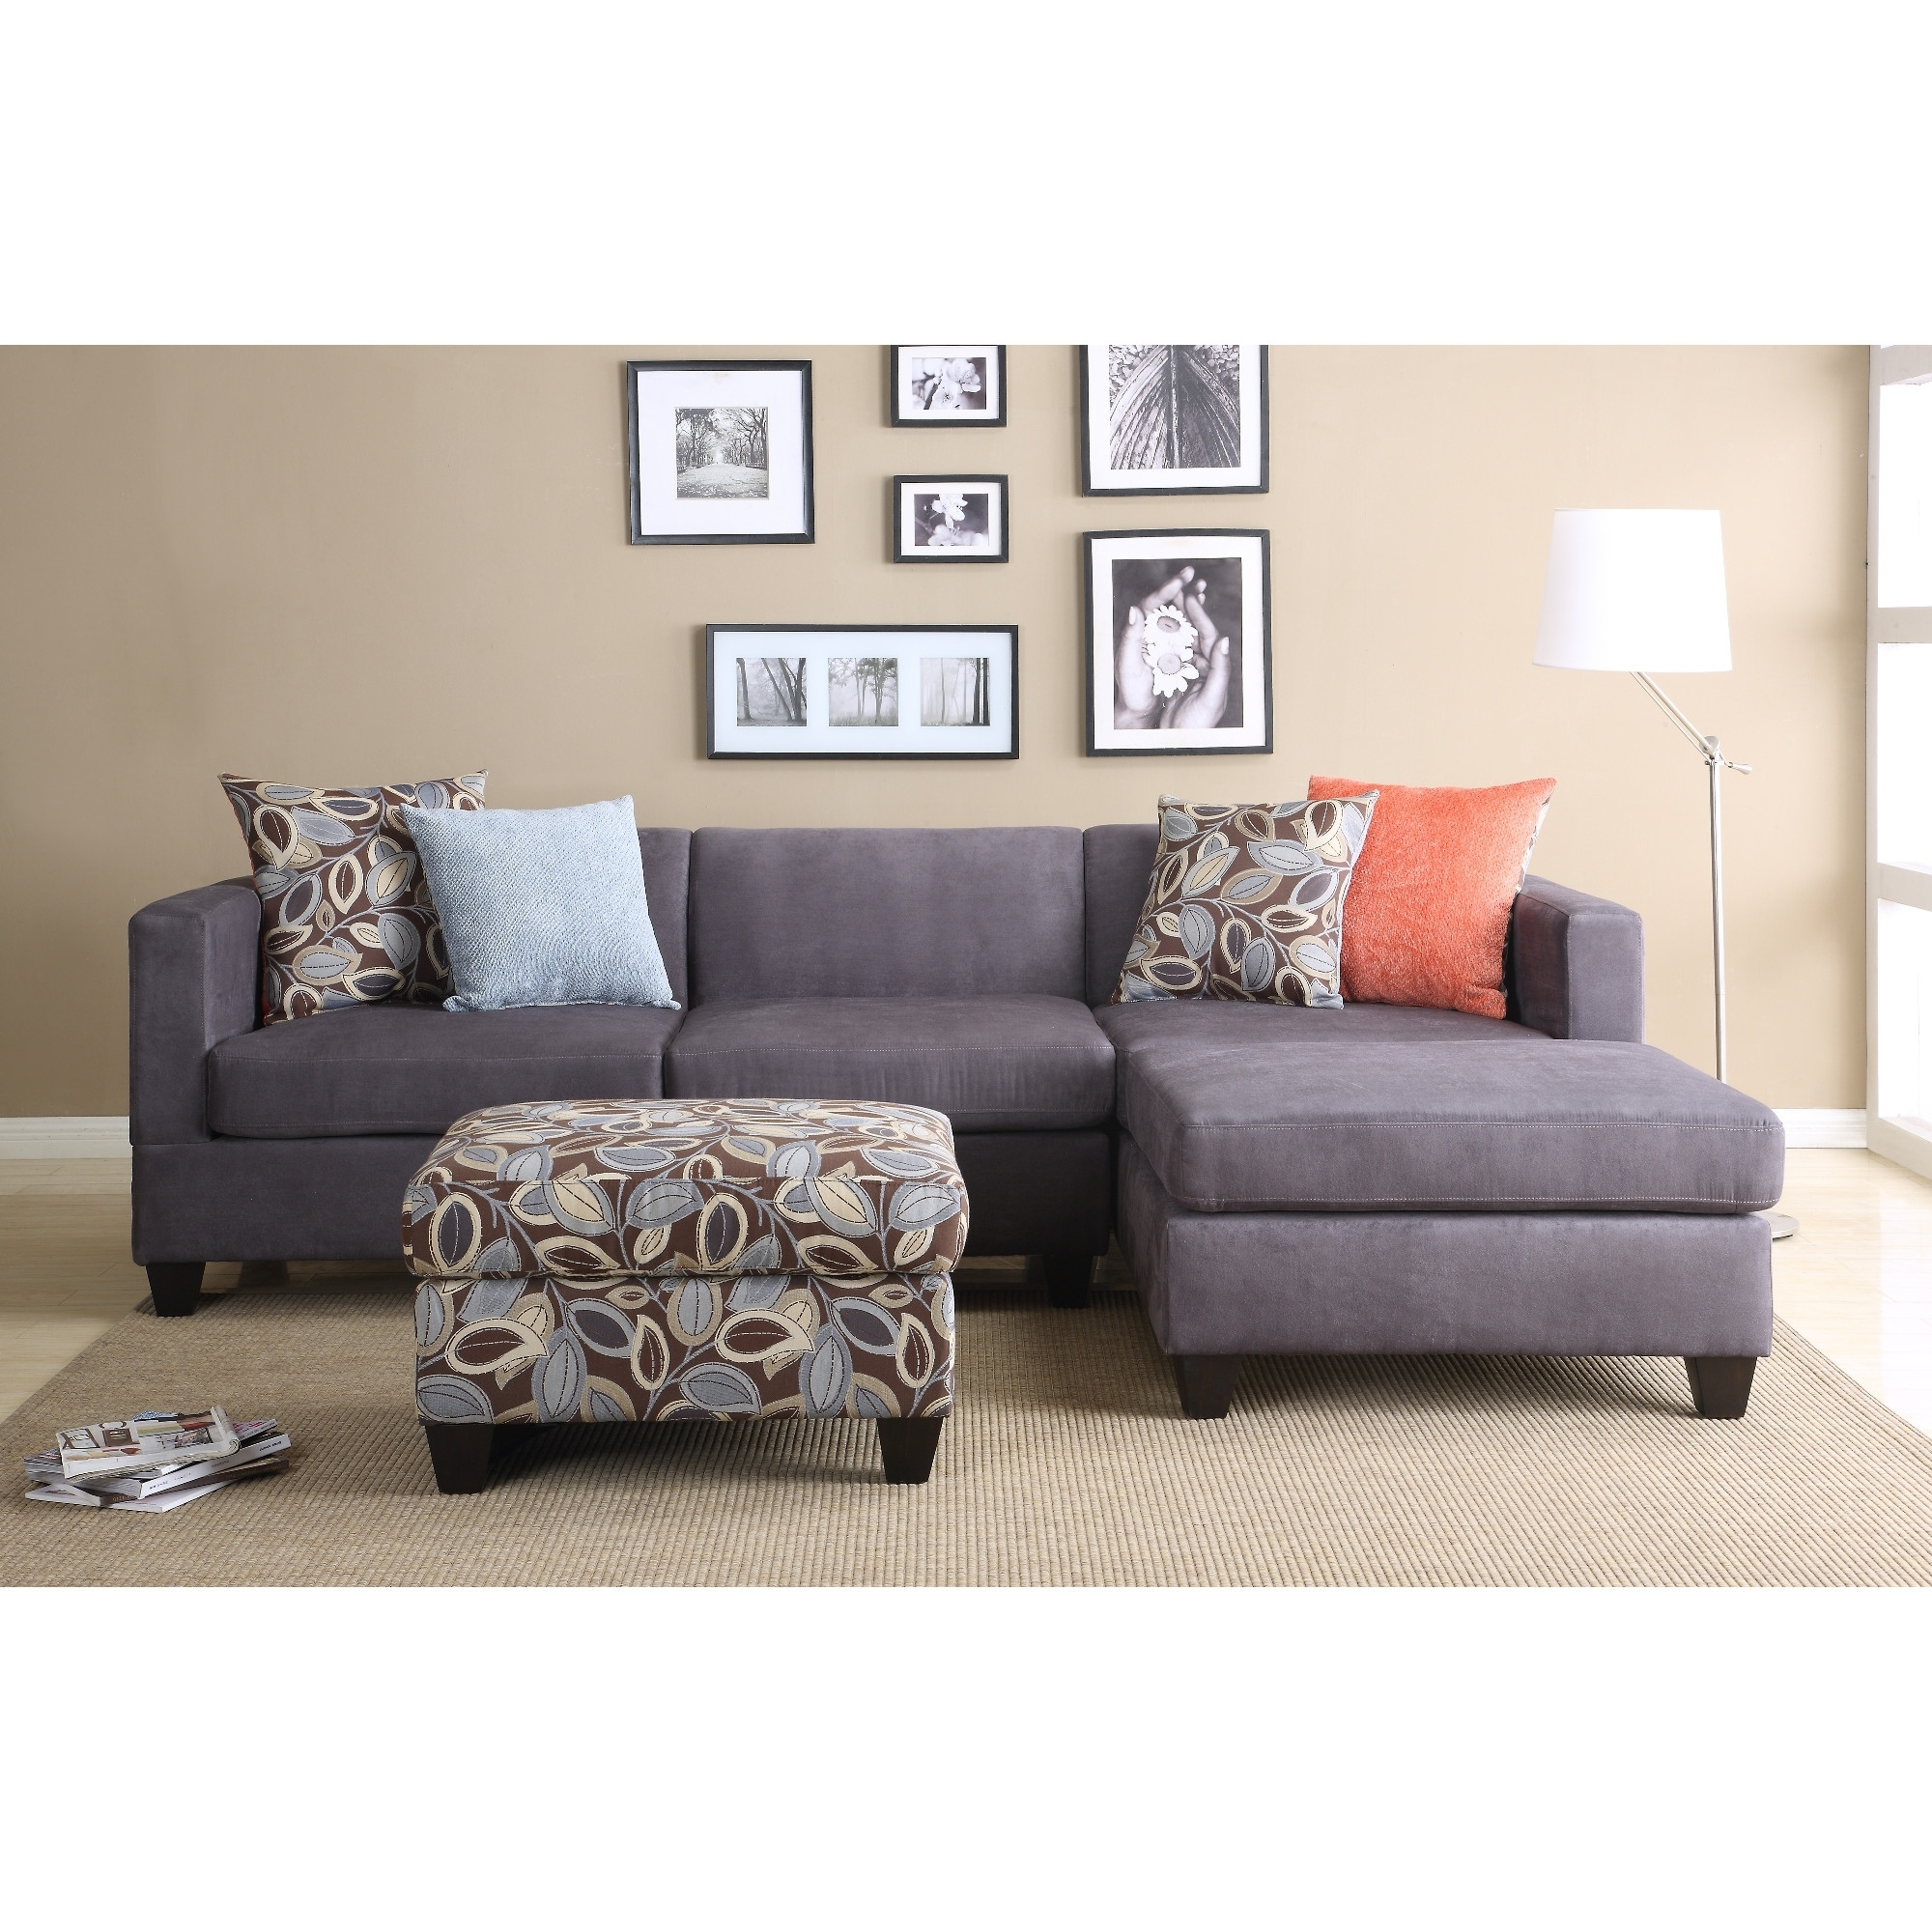 Fashionable Mini Sectional Sofas Within Furniture & Sofa: Perfect Small Spaces Configurable Sectional Sofa (View 3 of 20)